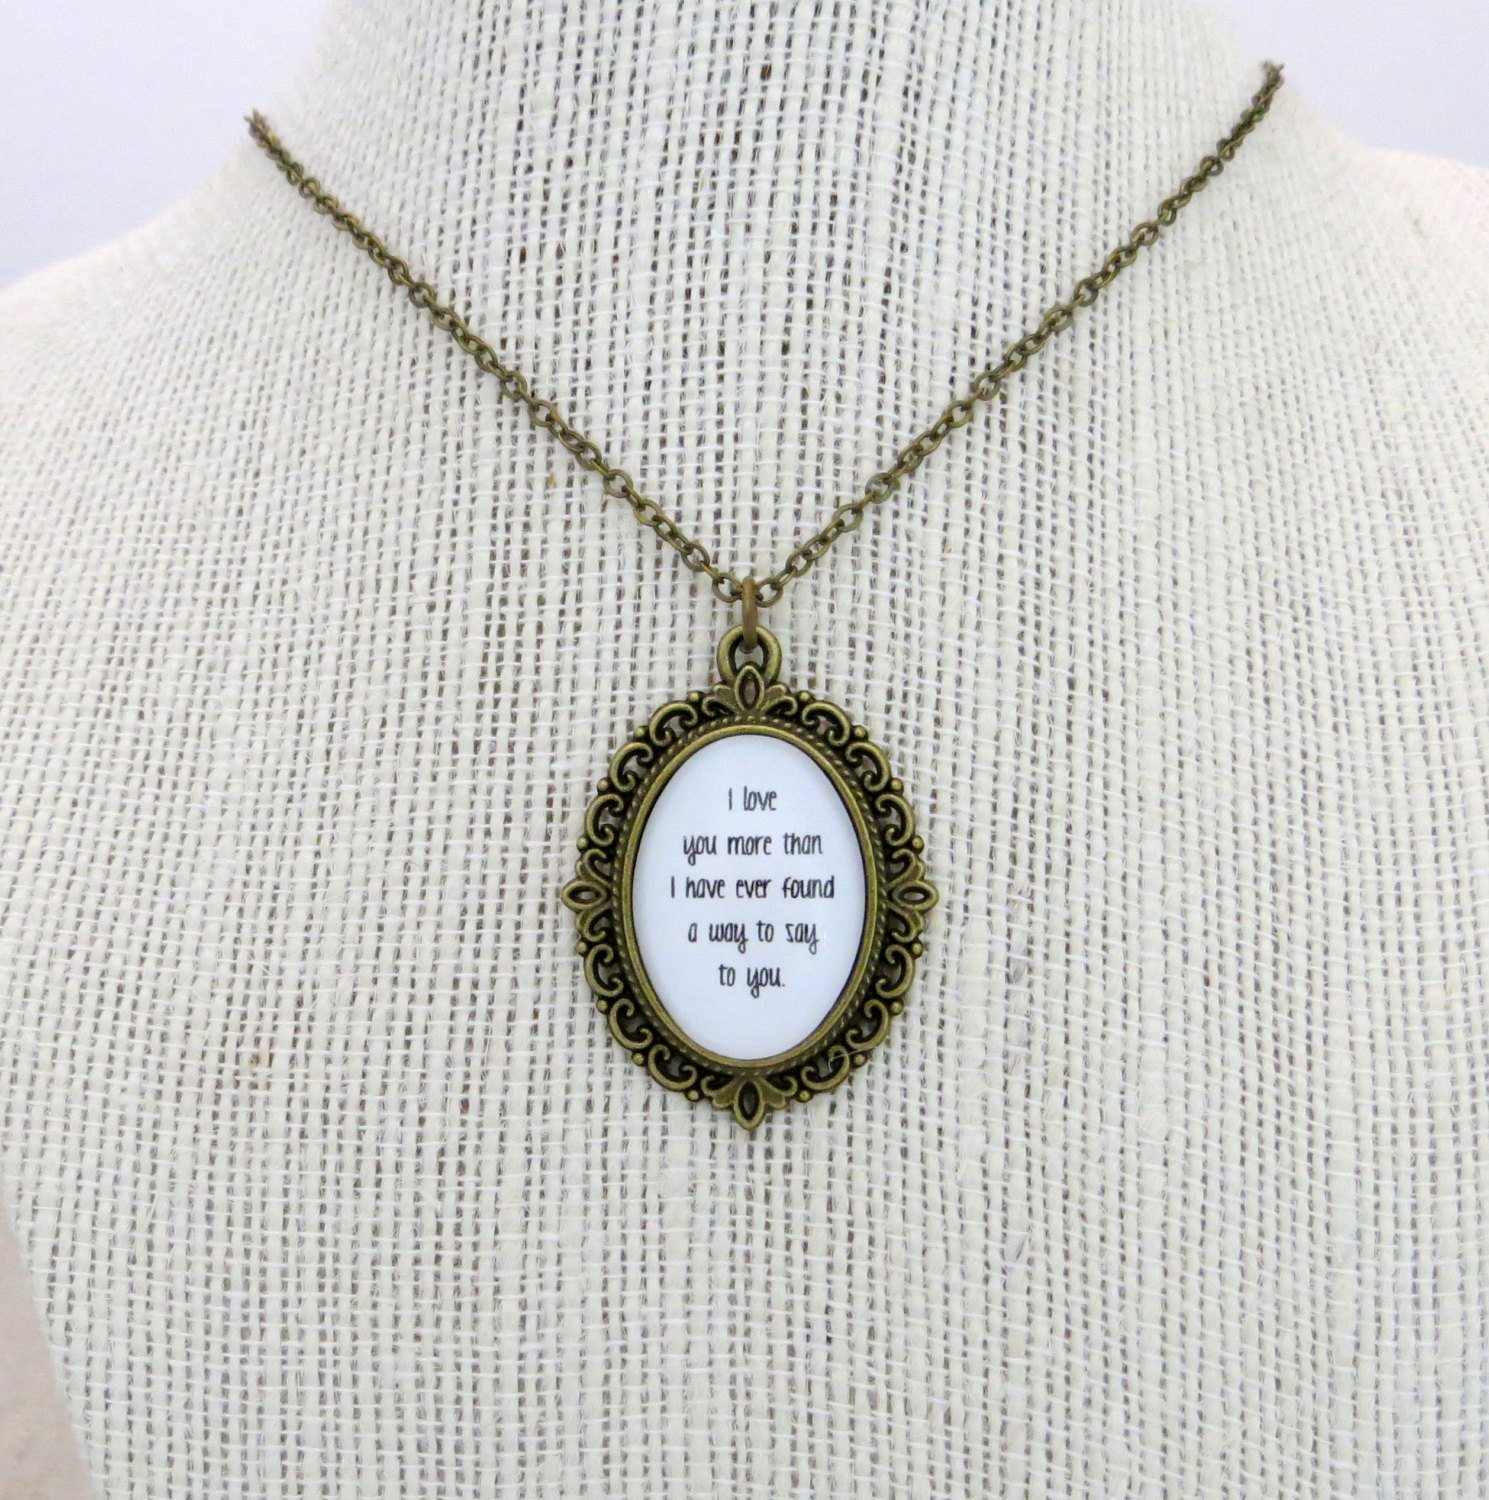 Ben Folds The Luckiest Inspired Lyrical Quote Pendant Necklace (Brass, 18 inches, Five)